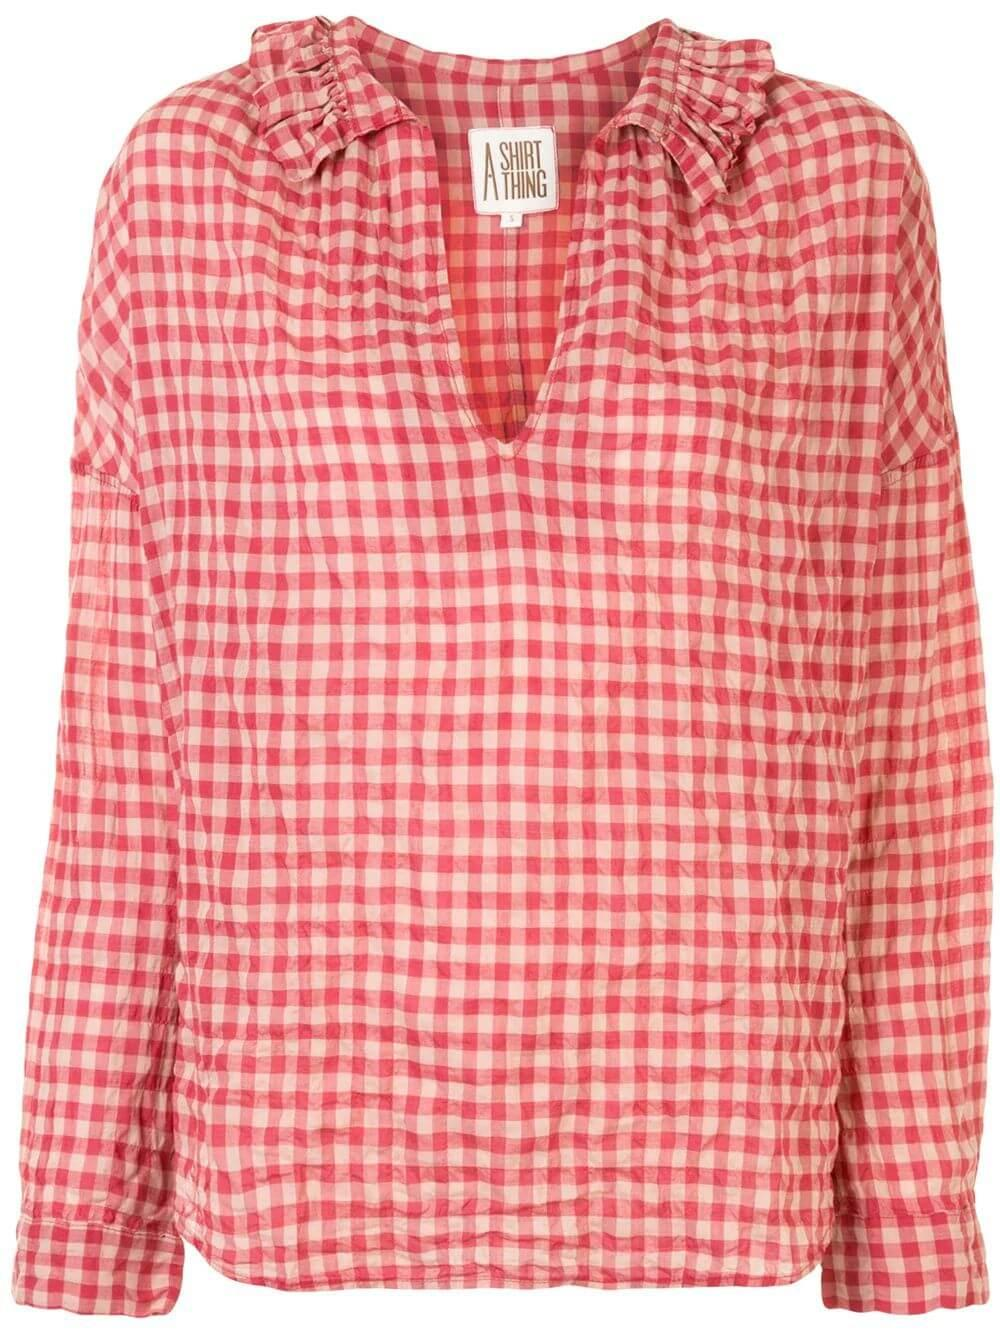 Penelope Gingham Shirt